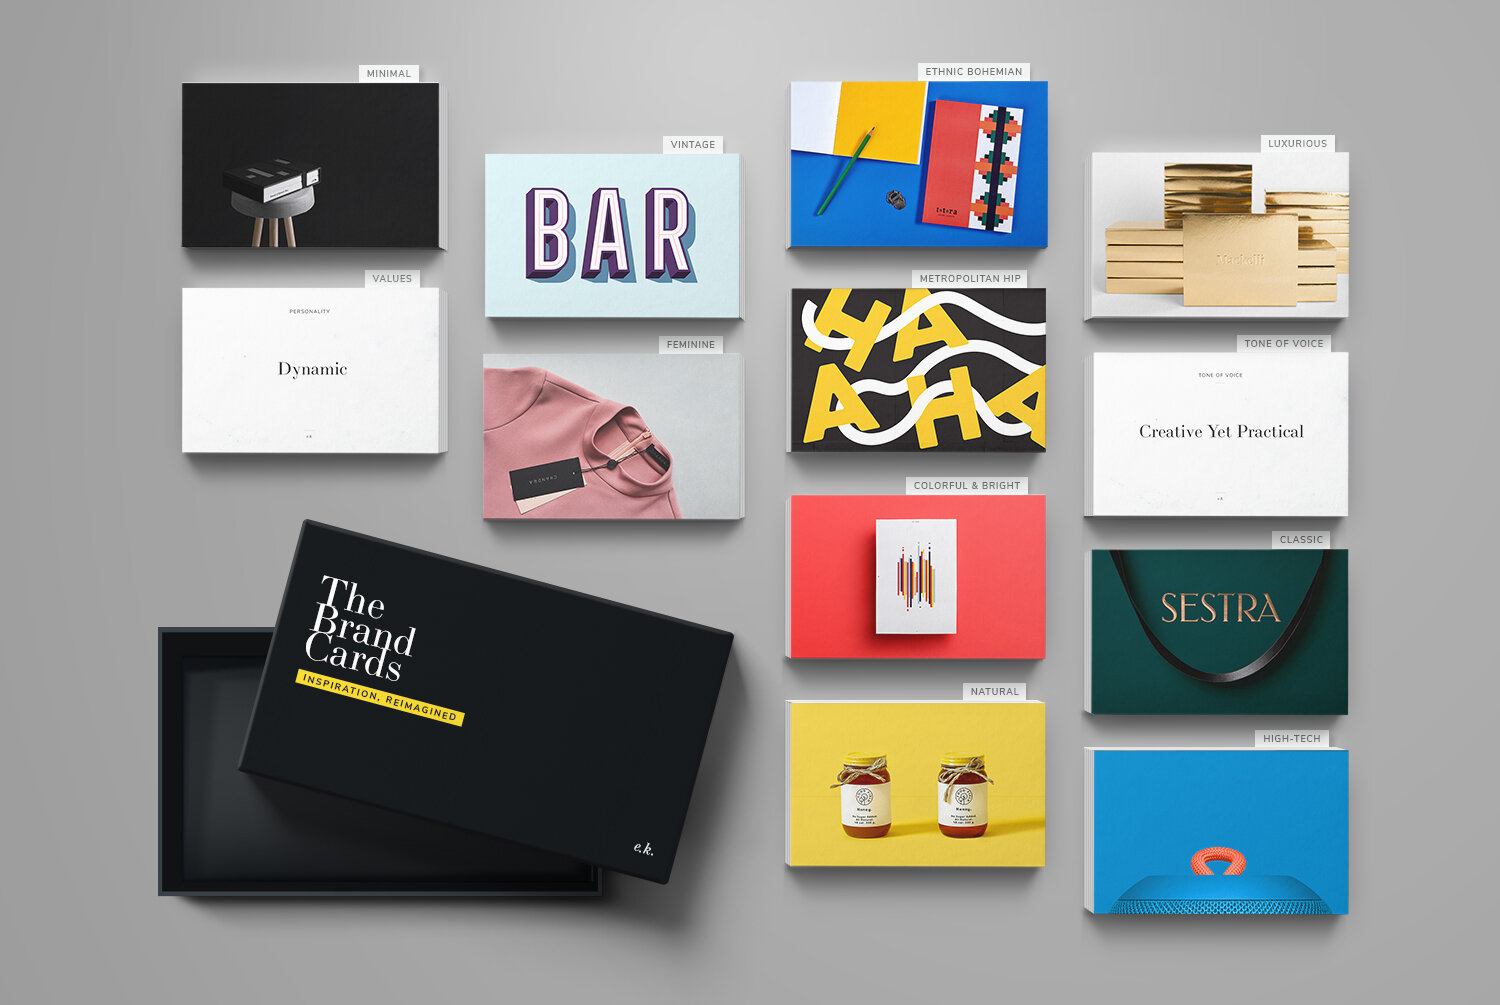 Would you like a printed version of our style pages? - We've curated 200 design works into 10 styles and included them into the Brand Cards. Catch this visual brainstorming tool and use it to jump-start your next branding project!